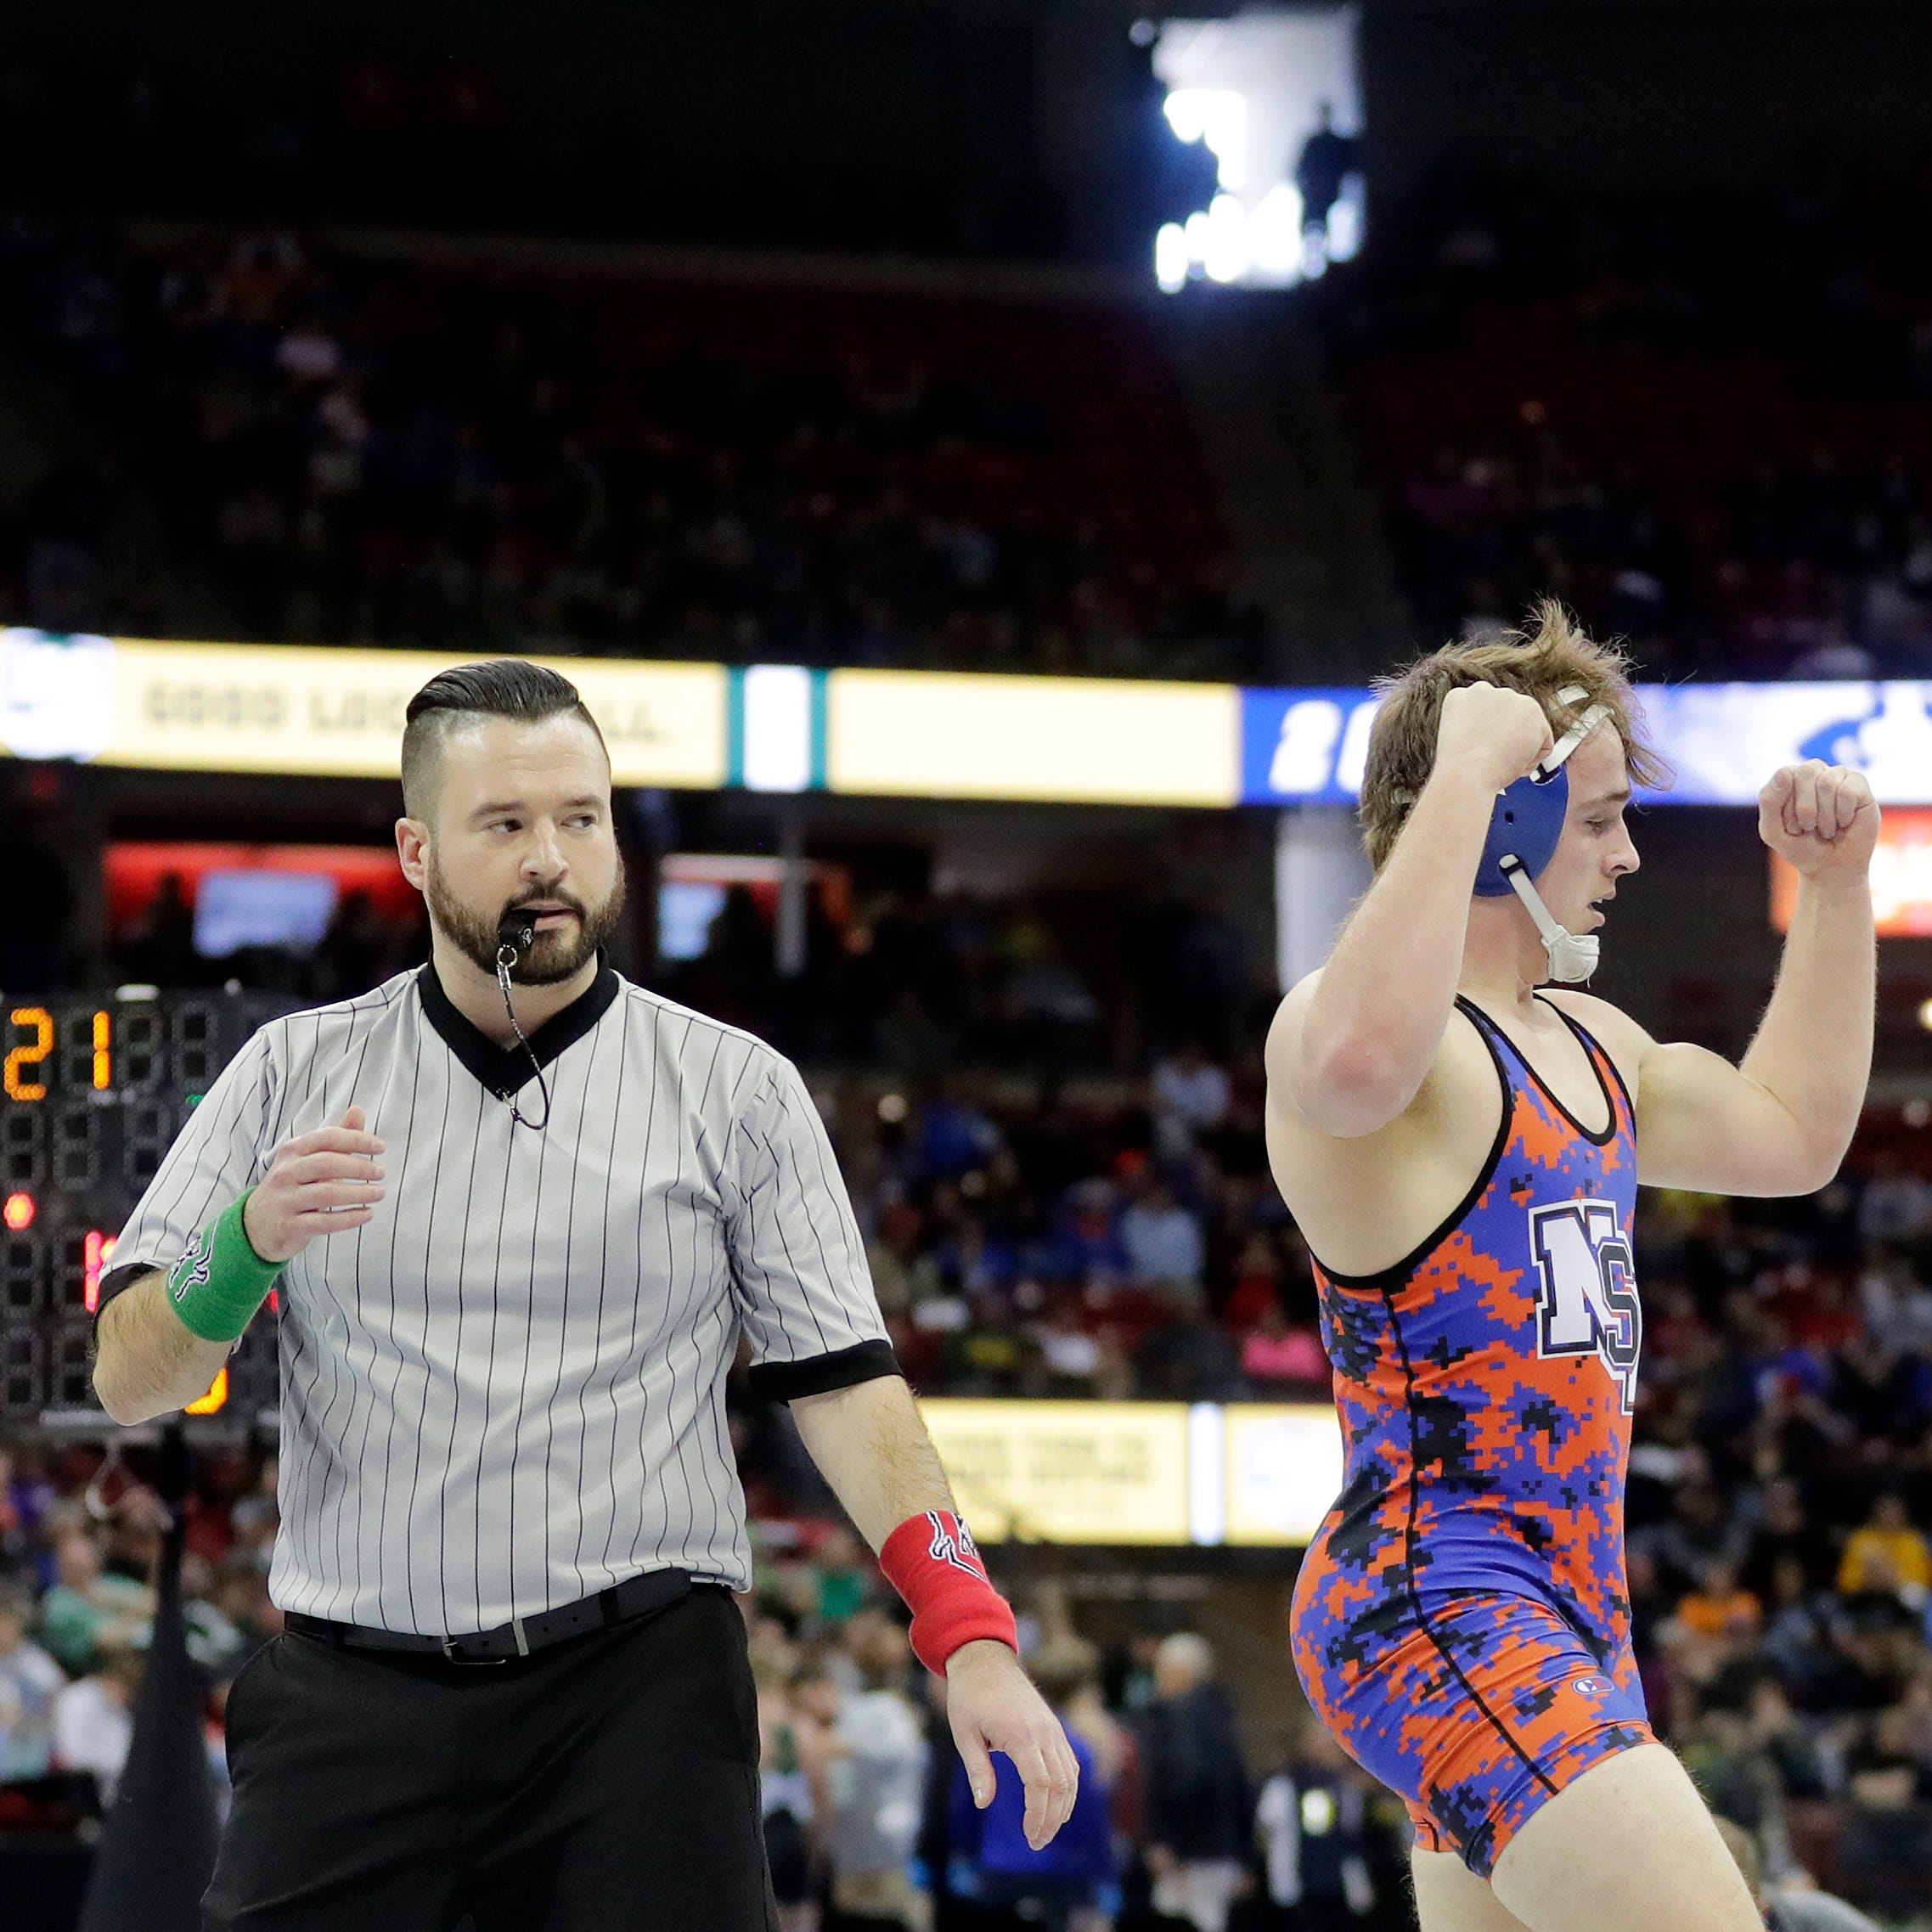 North Fond du Lac/St. Mary's Springs' Orlandoni gets revenge on undefeated foe, reaches semis